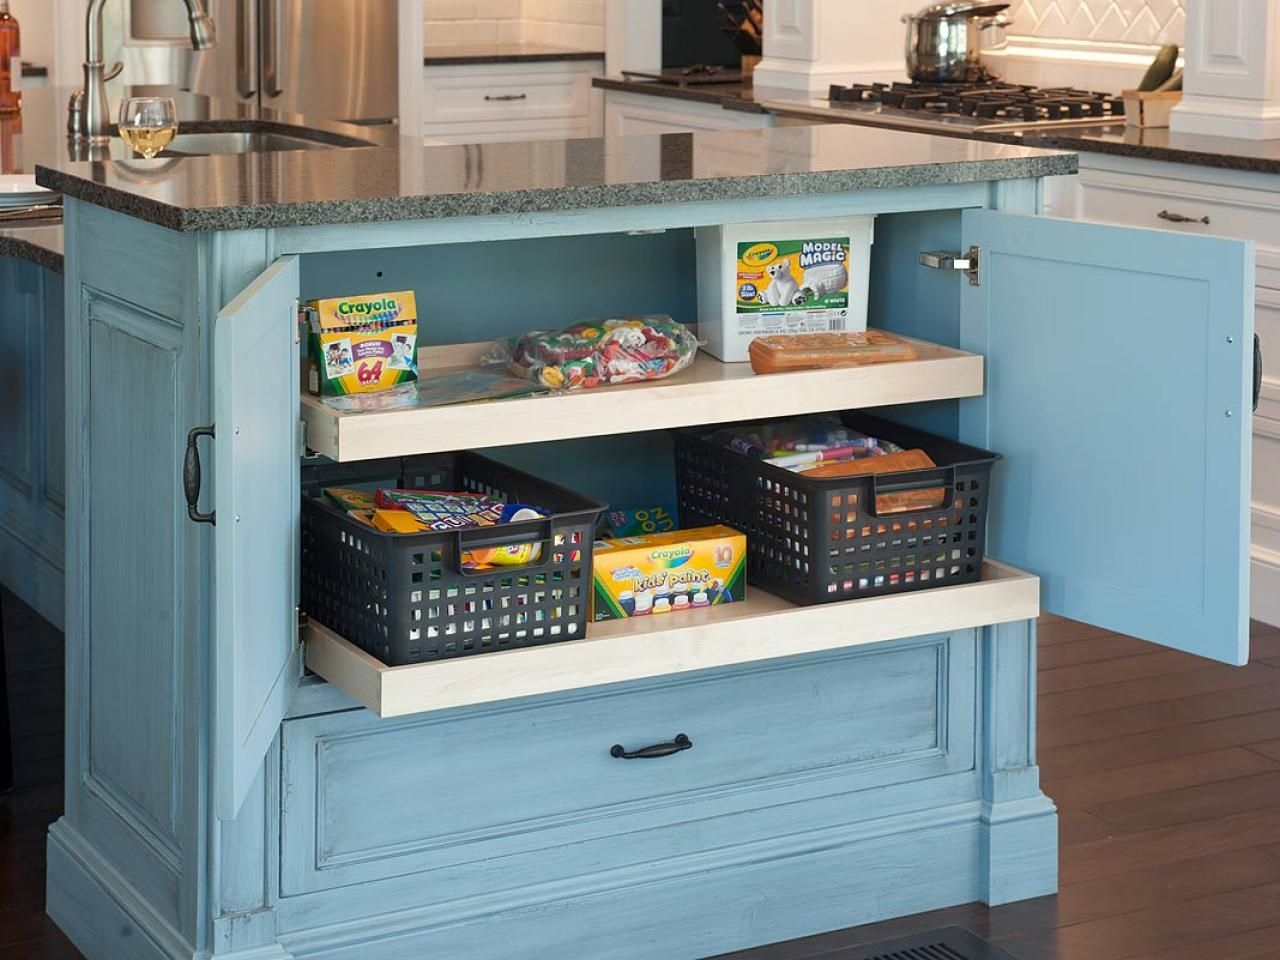 Kitchen Storage Ideas | Mullets, Shelving and Art supplies